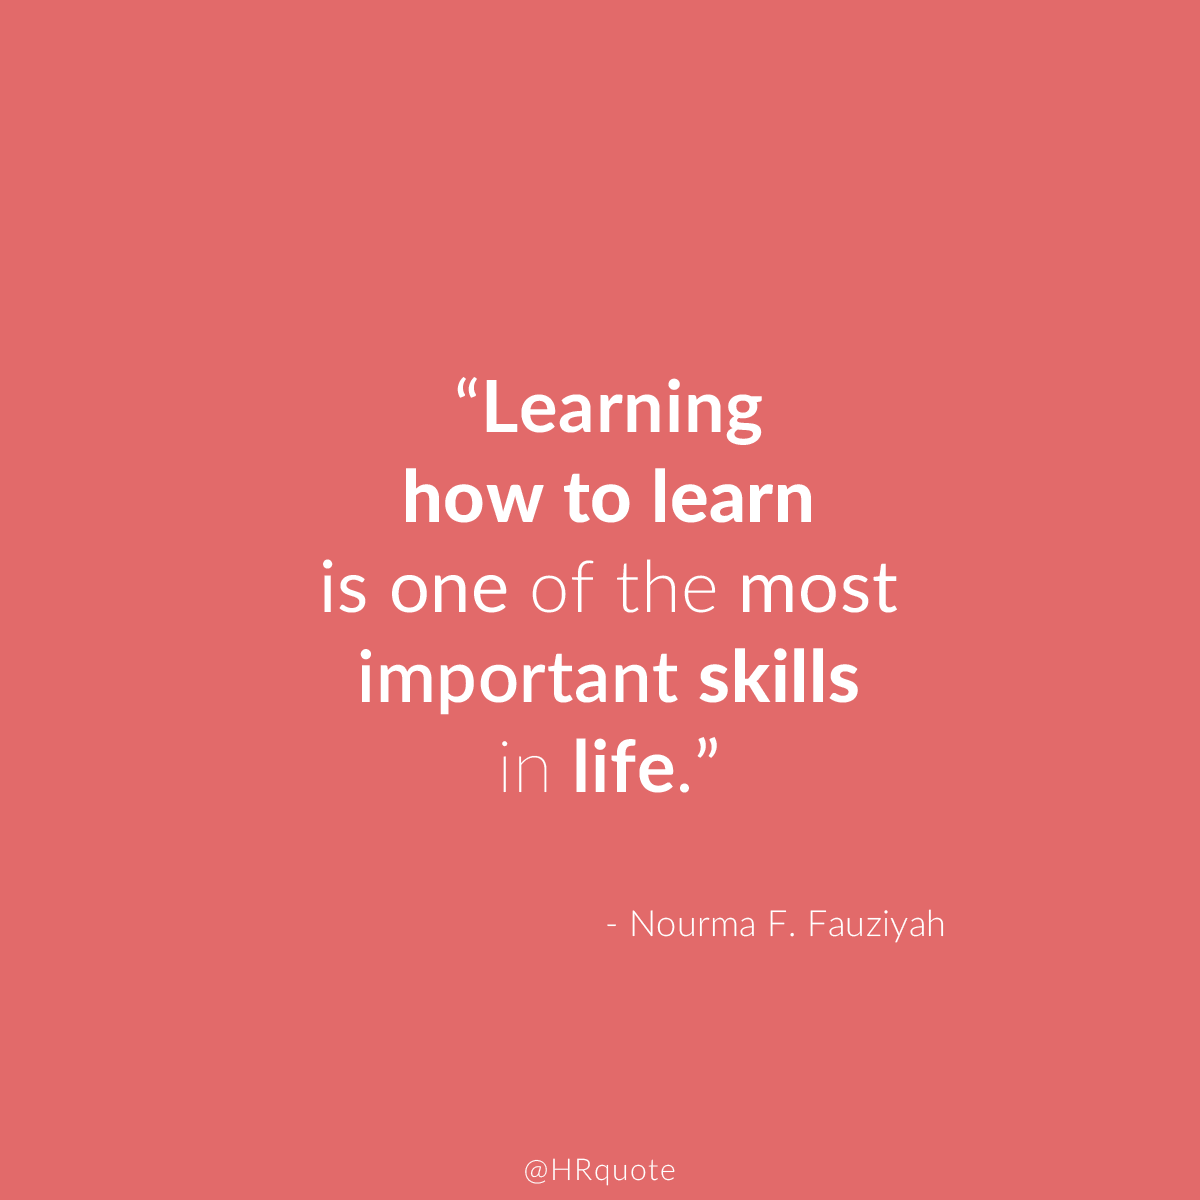 hr quote on twitter learning how to learn is one of the most hr quote on twitter learning how to learn is one of the most important skills in life nourma f fauziyah hrquote t co 1uy9jf9b0t